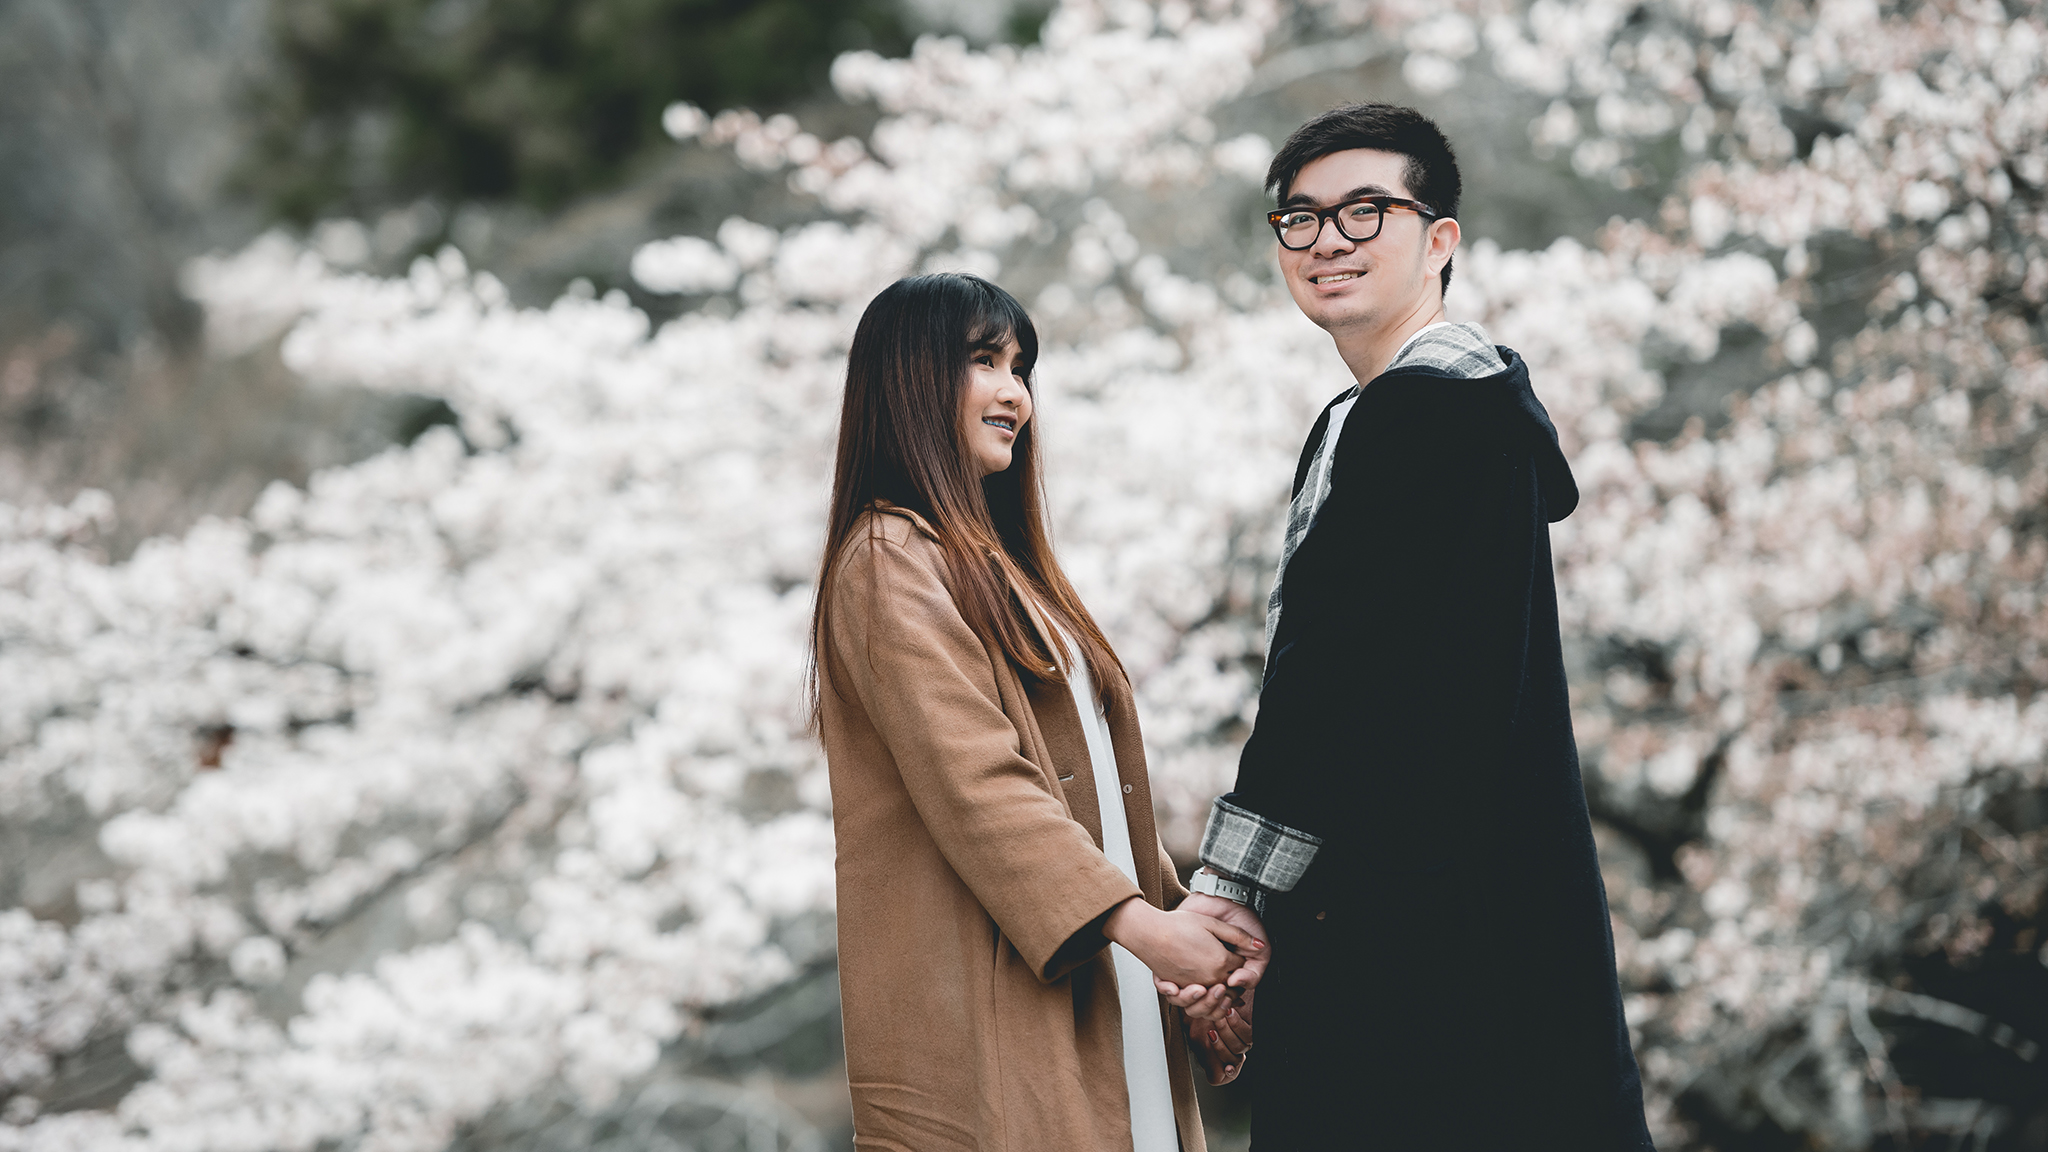 Prewedding Kyoto Keage Incline 00025.JPG